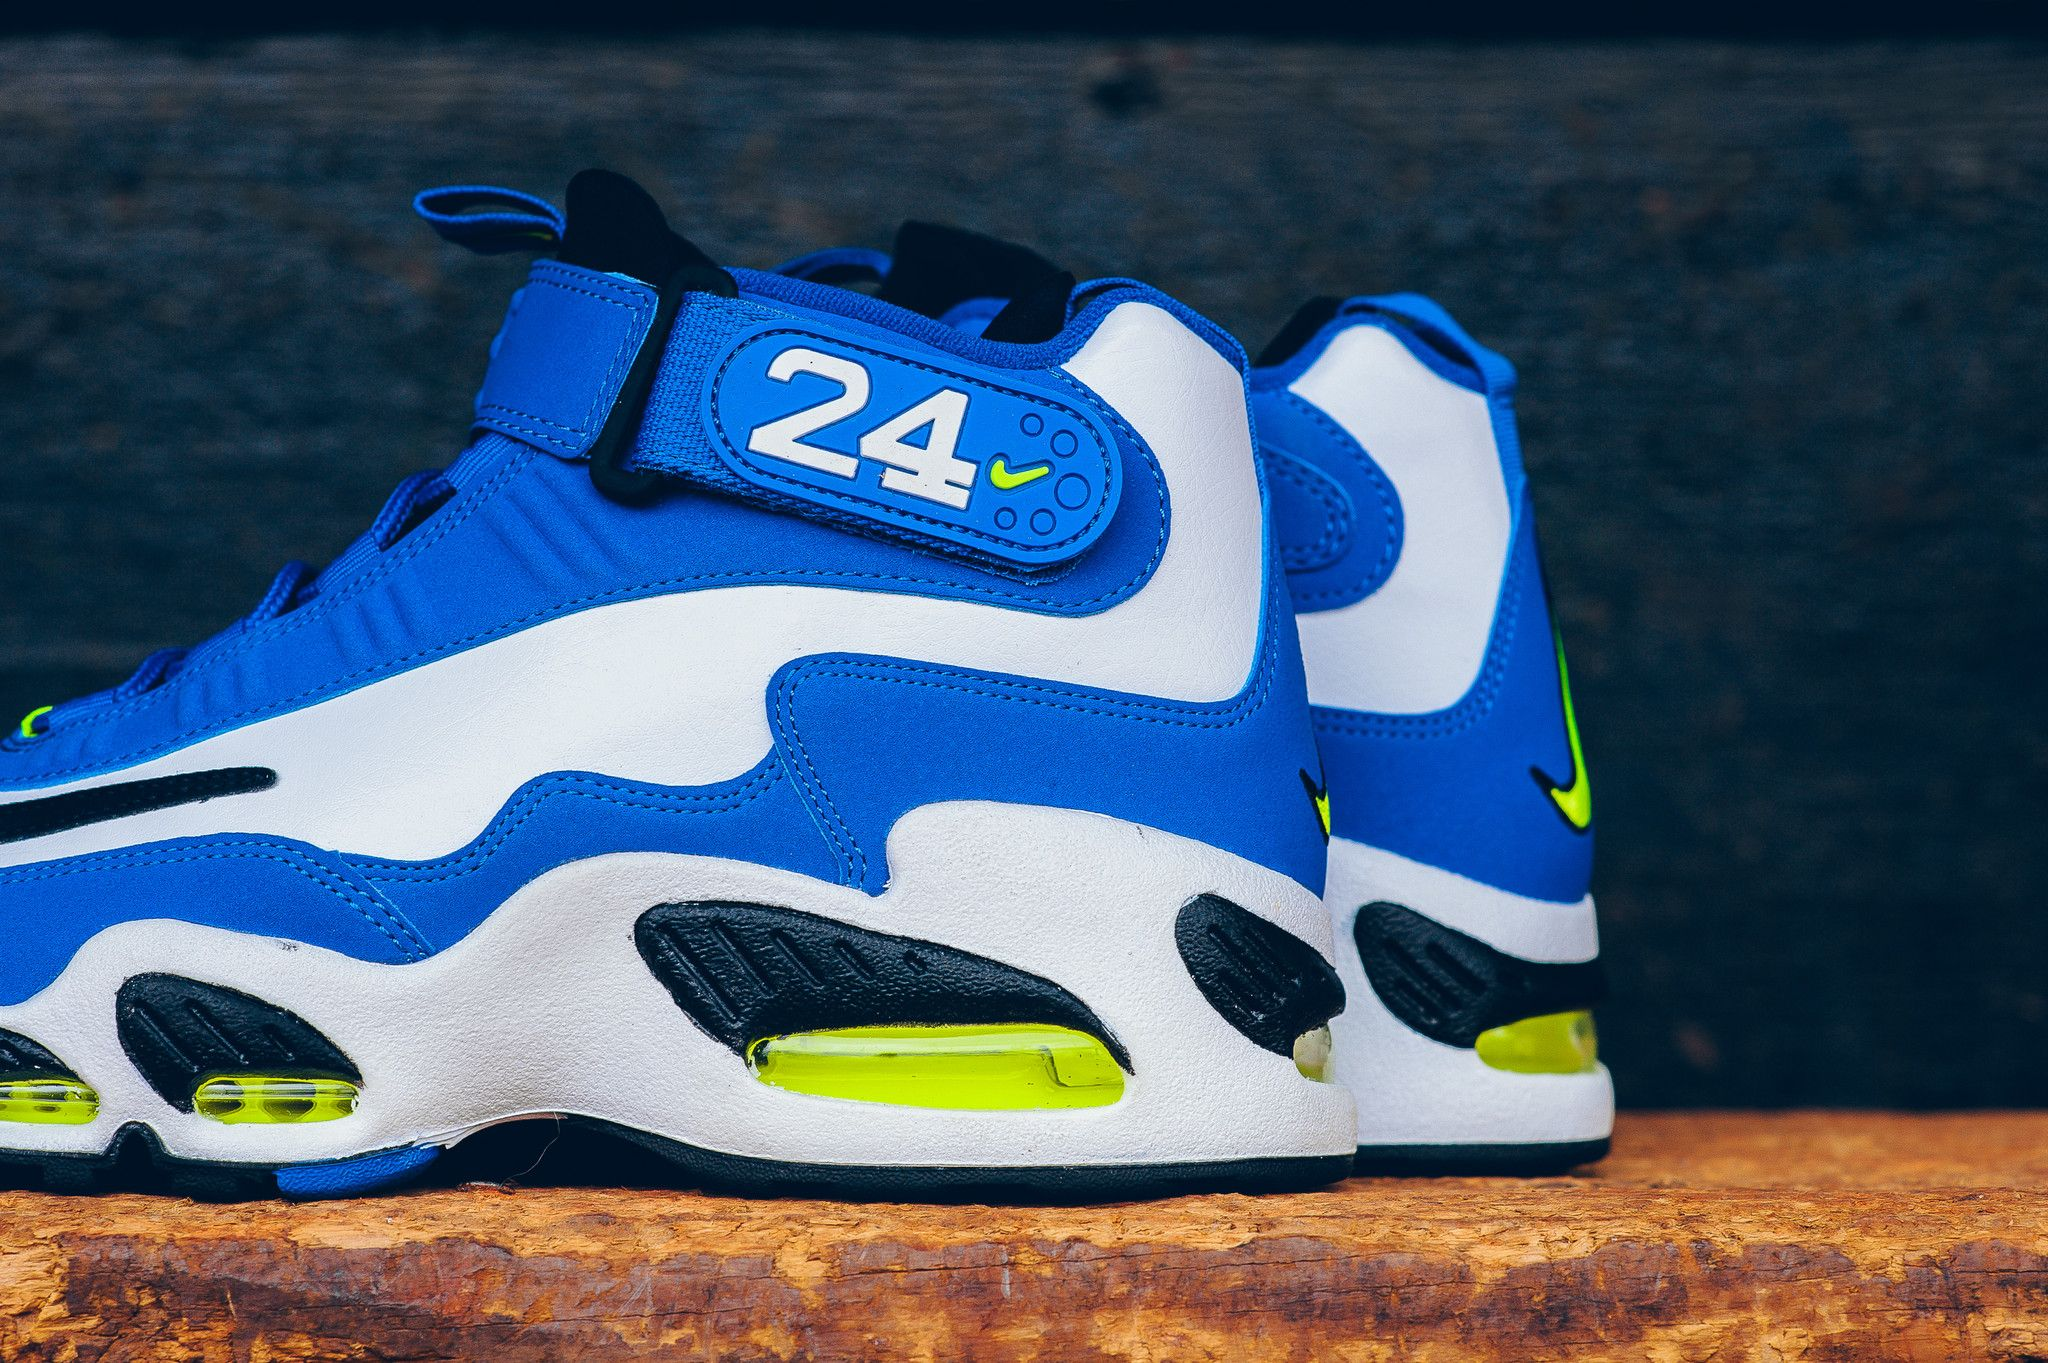 half off 0ff3c 0da81 Nike Air Griffey Max 1 Varsity Royal